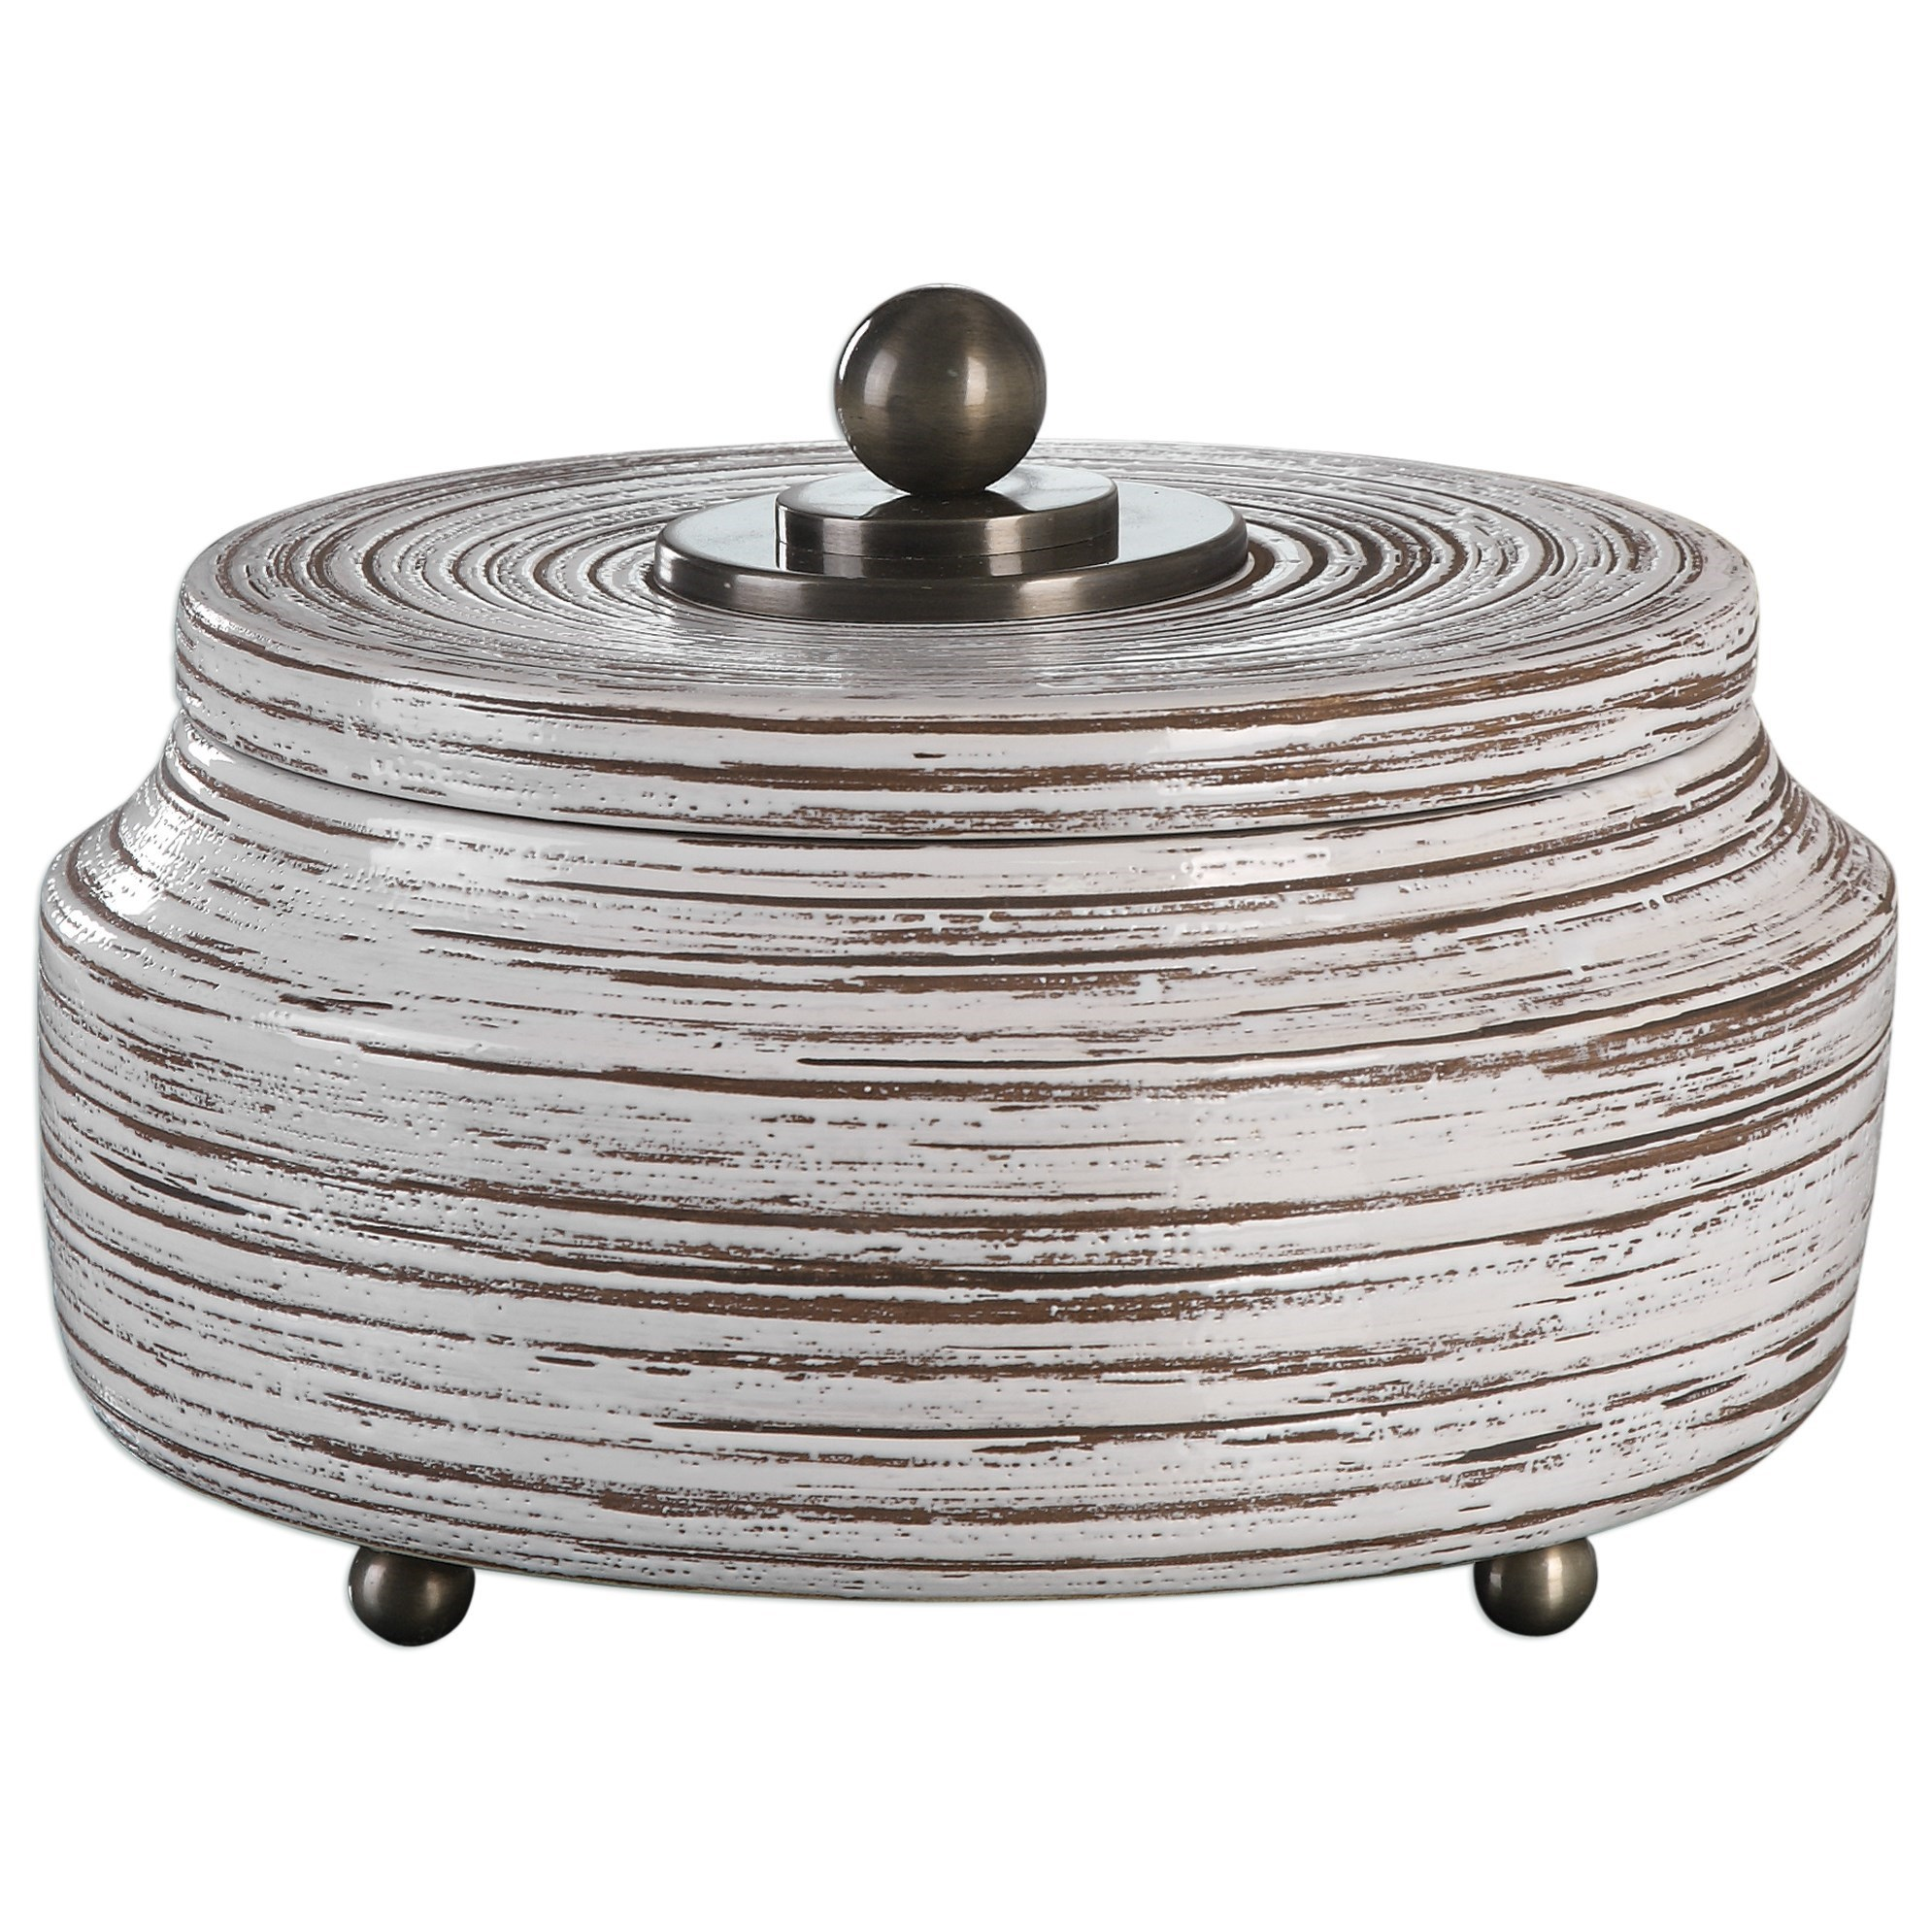 Uttermost Accessories Saltillo Box - Item Number: 20157